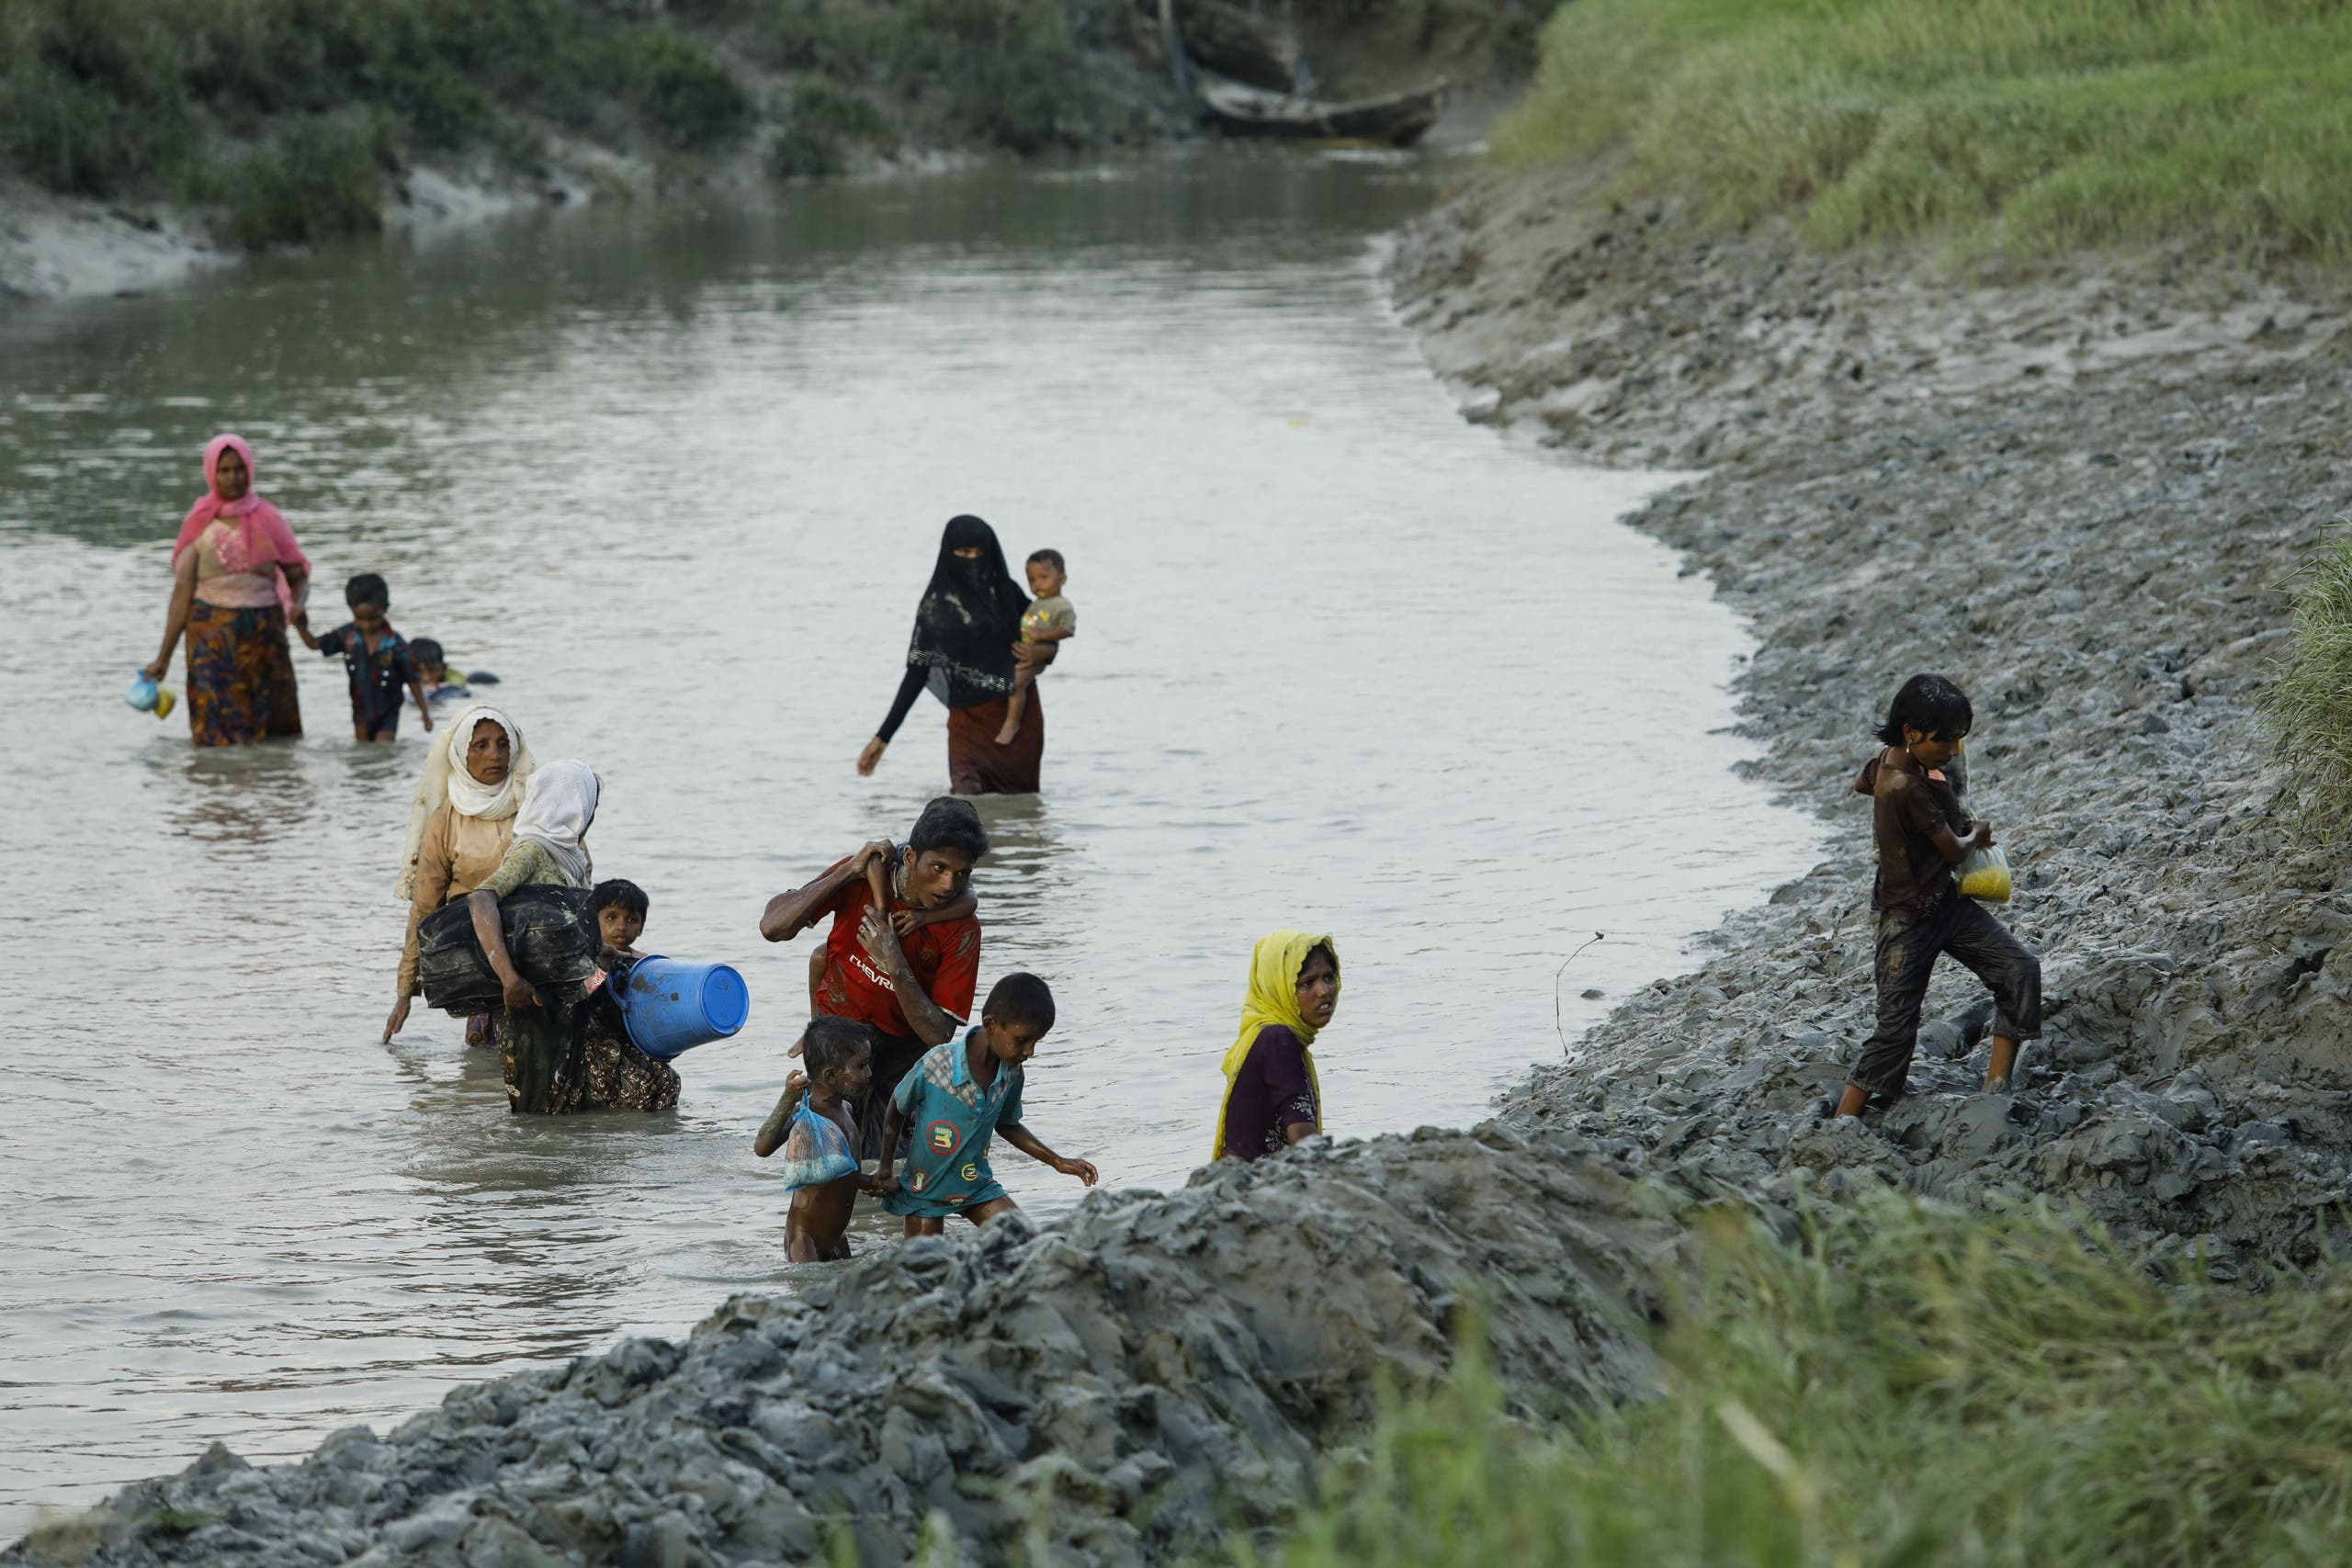 Displaced Rohingya refugees from Rakhine state in Myanmar cross a river near Ukhia, near the border between Bangladesh and Myanmar, as they flee violence on September 4, 2017. AFP